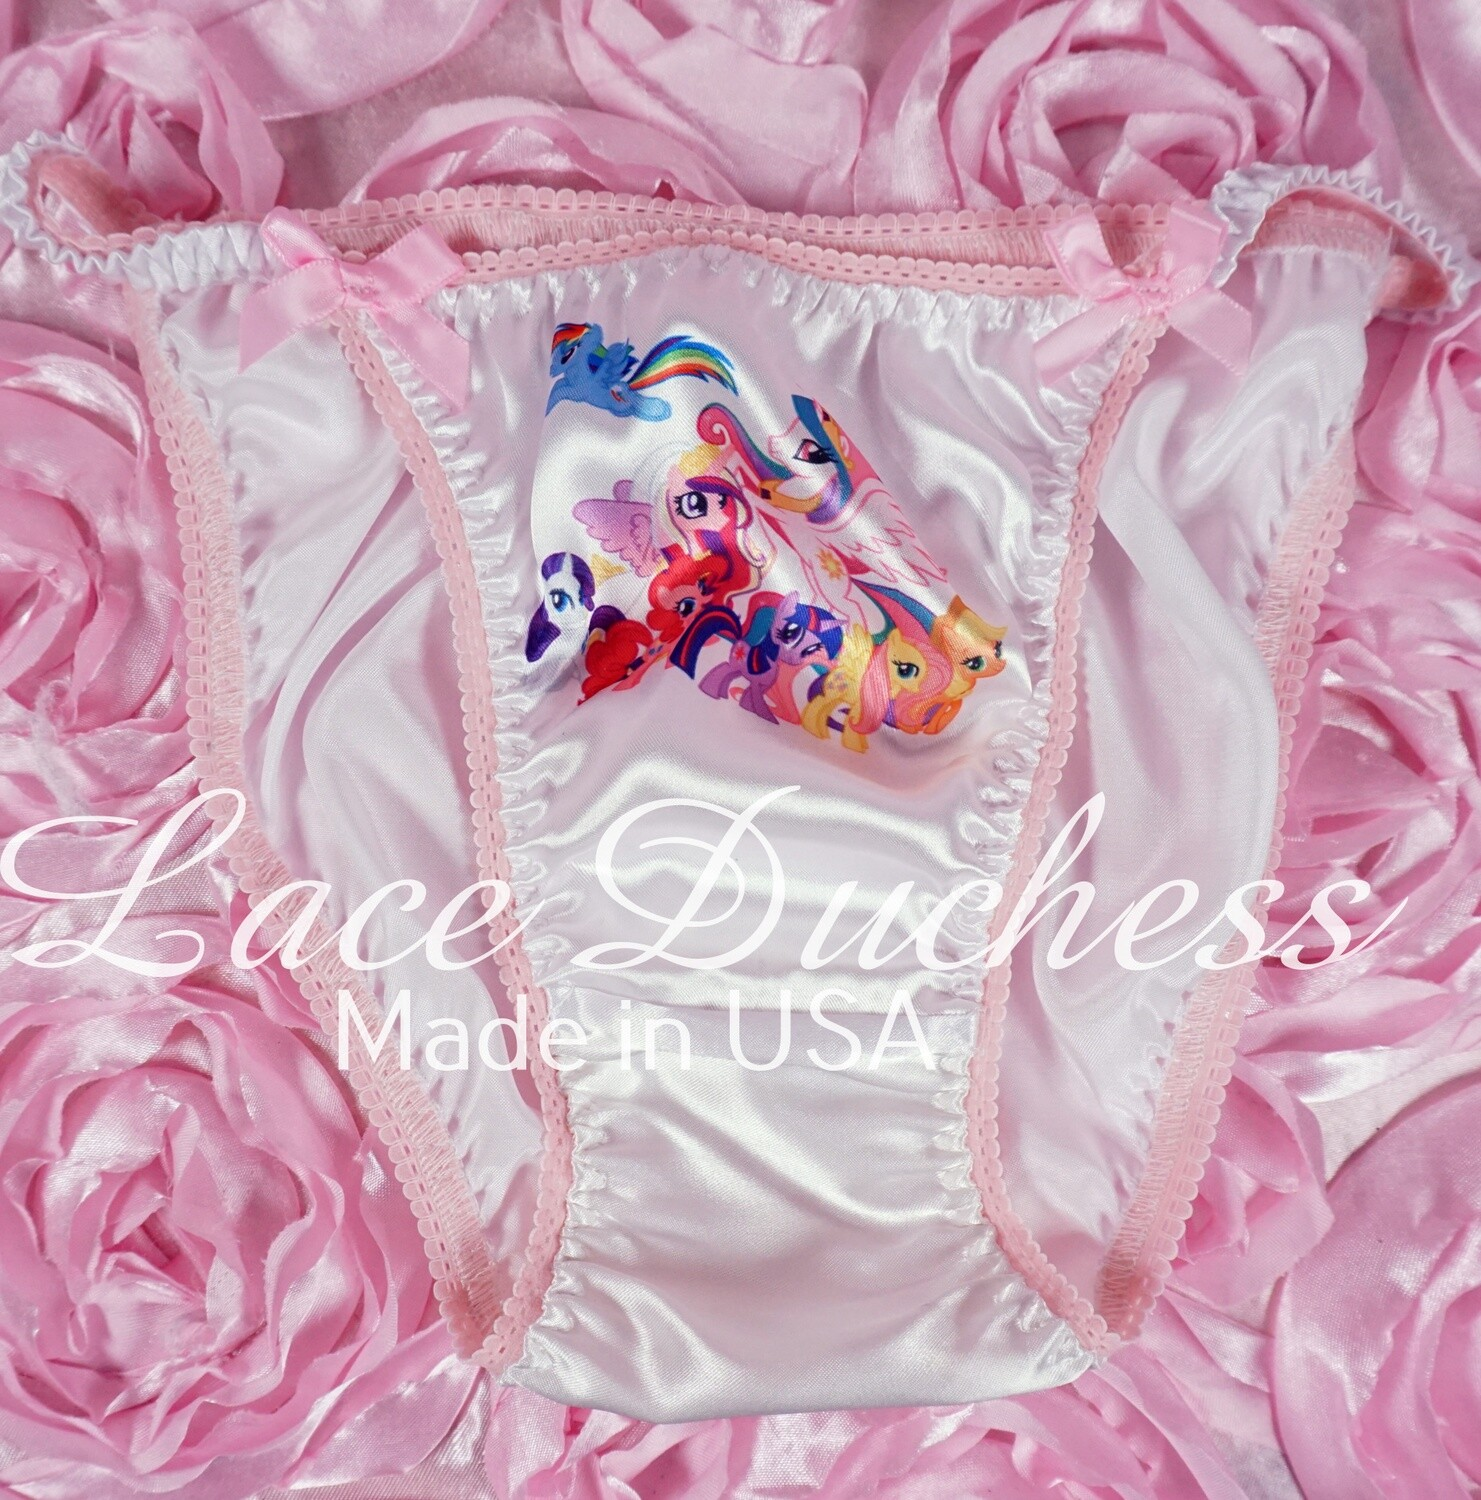 Lace Duchess Classic 80's cut My Little PONY group Character movie print satin wet look panties sz 5 6 7